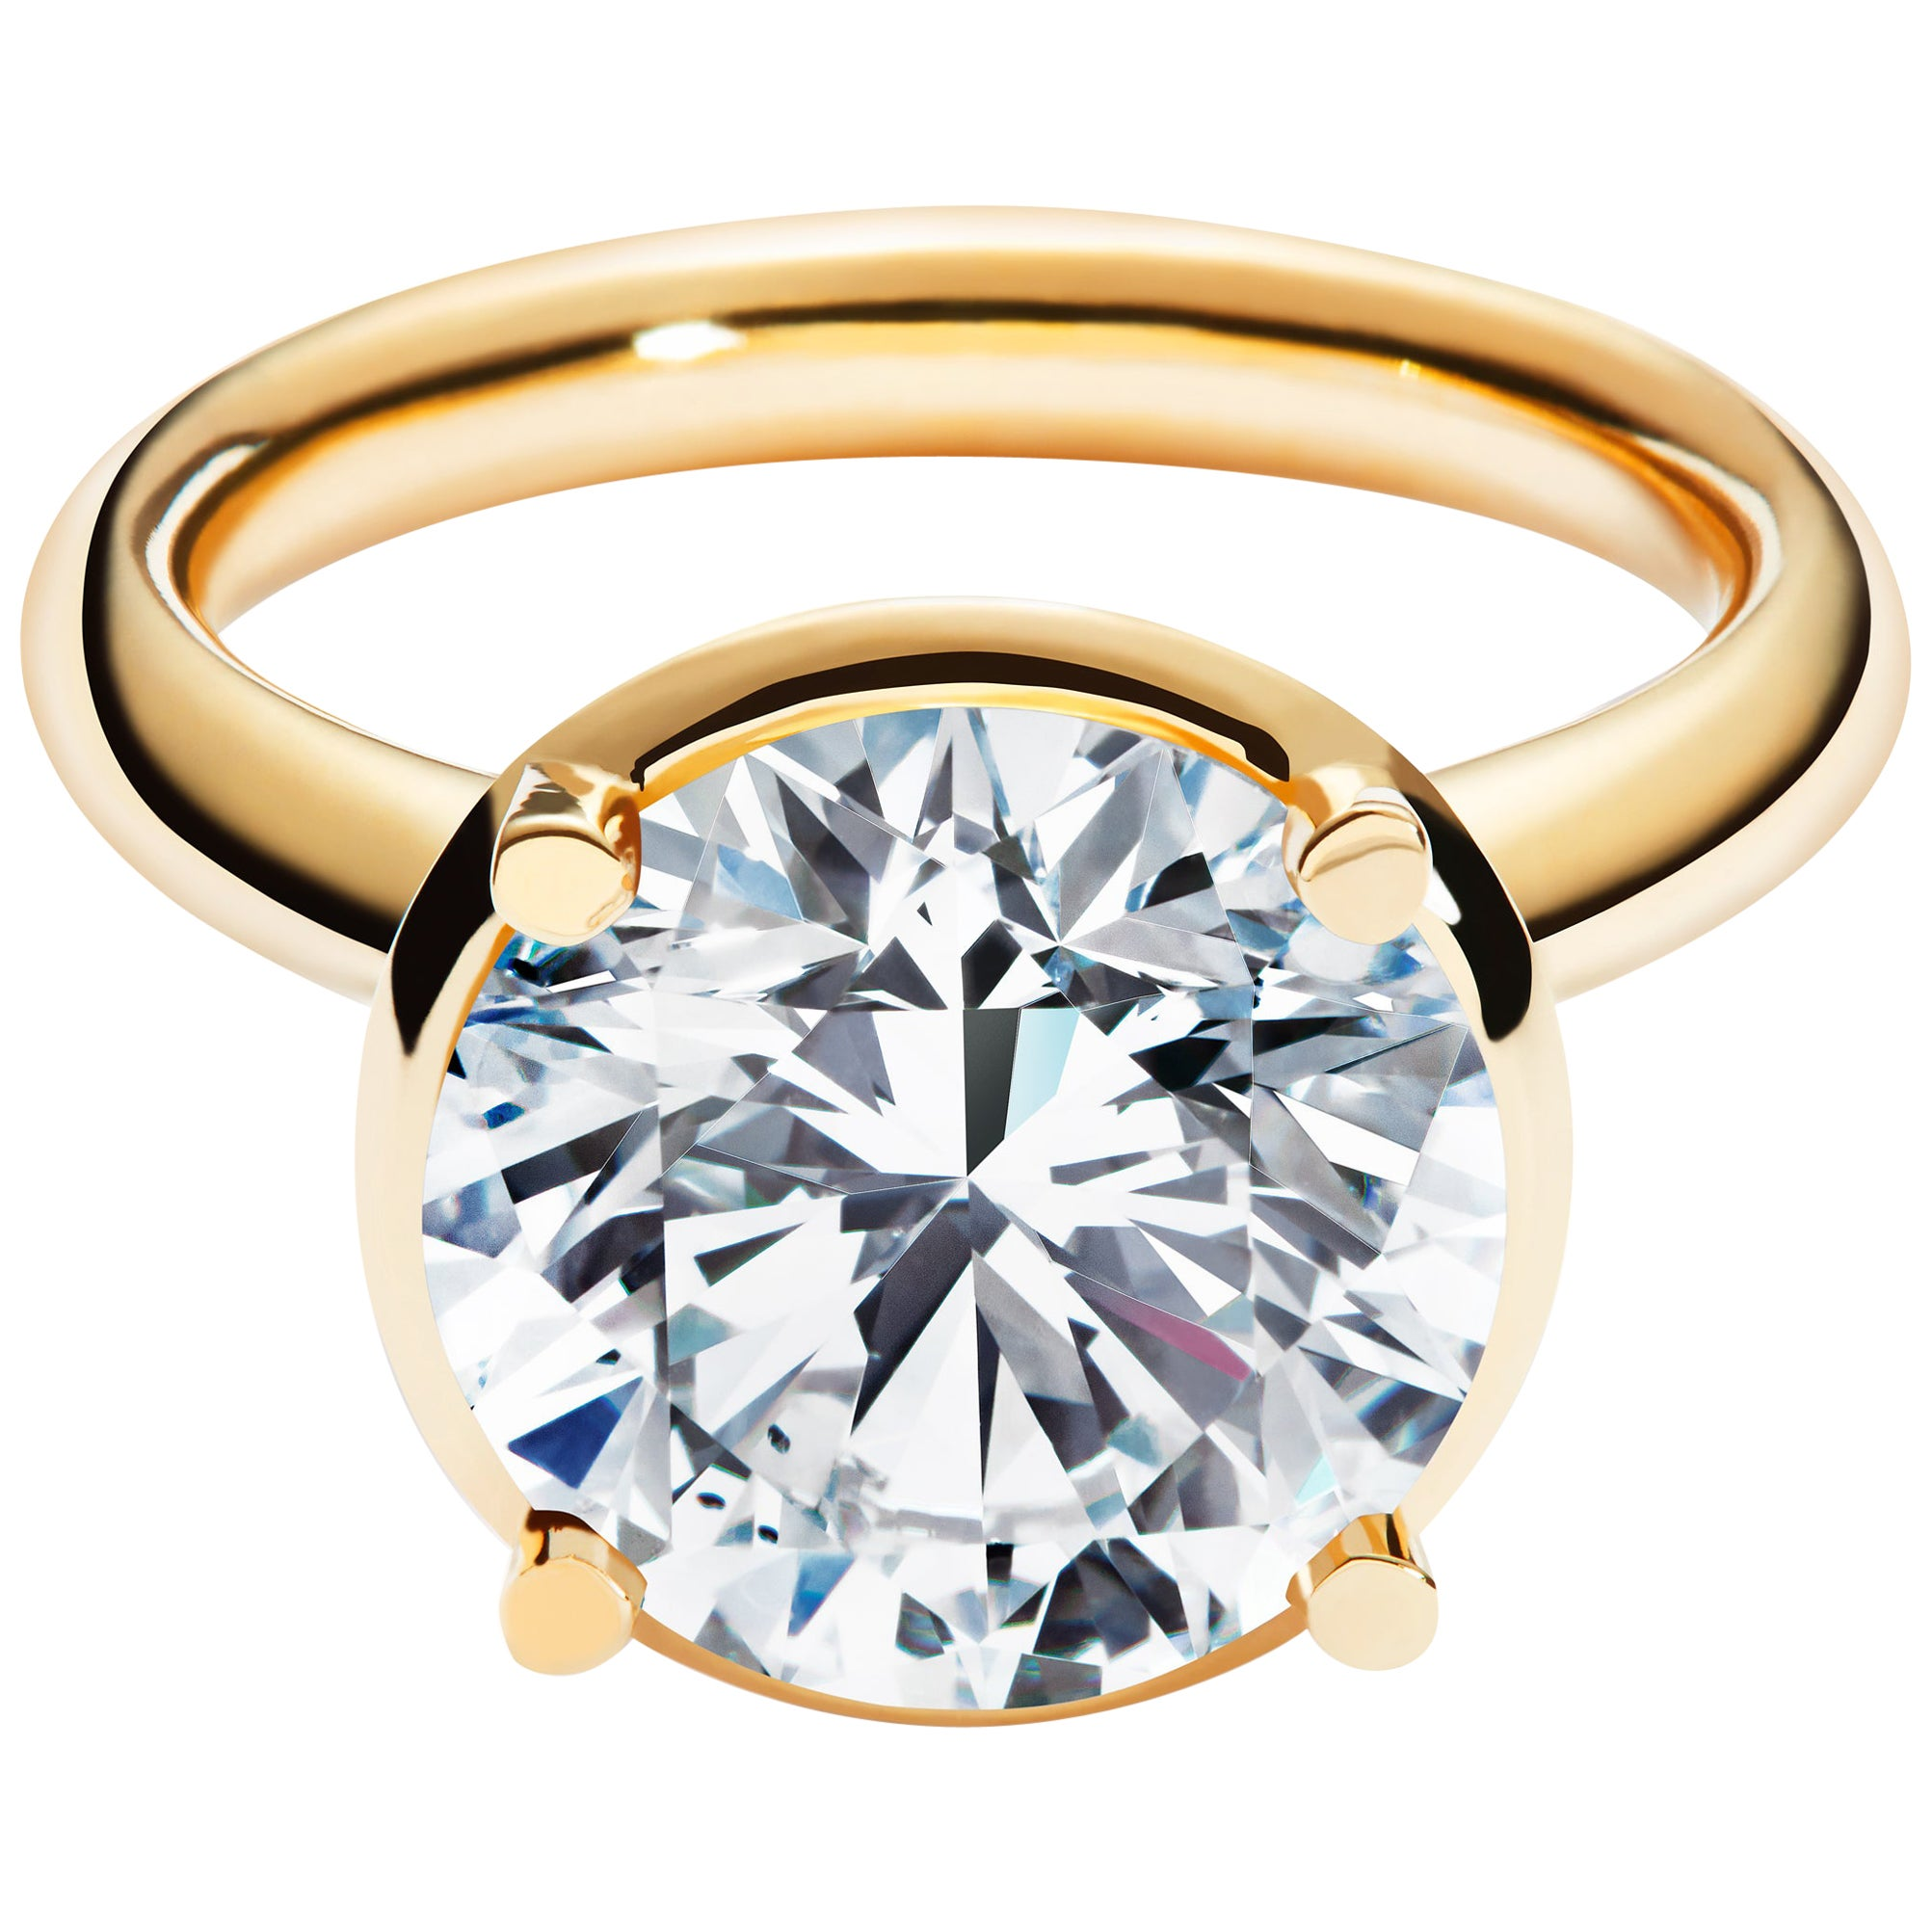 5ct Solitaire Traceable Diamond Ring In 18 Karat Yellow Gold By Rocks For Life